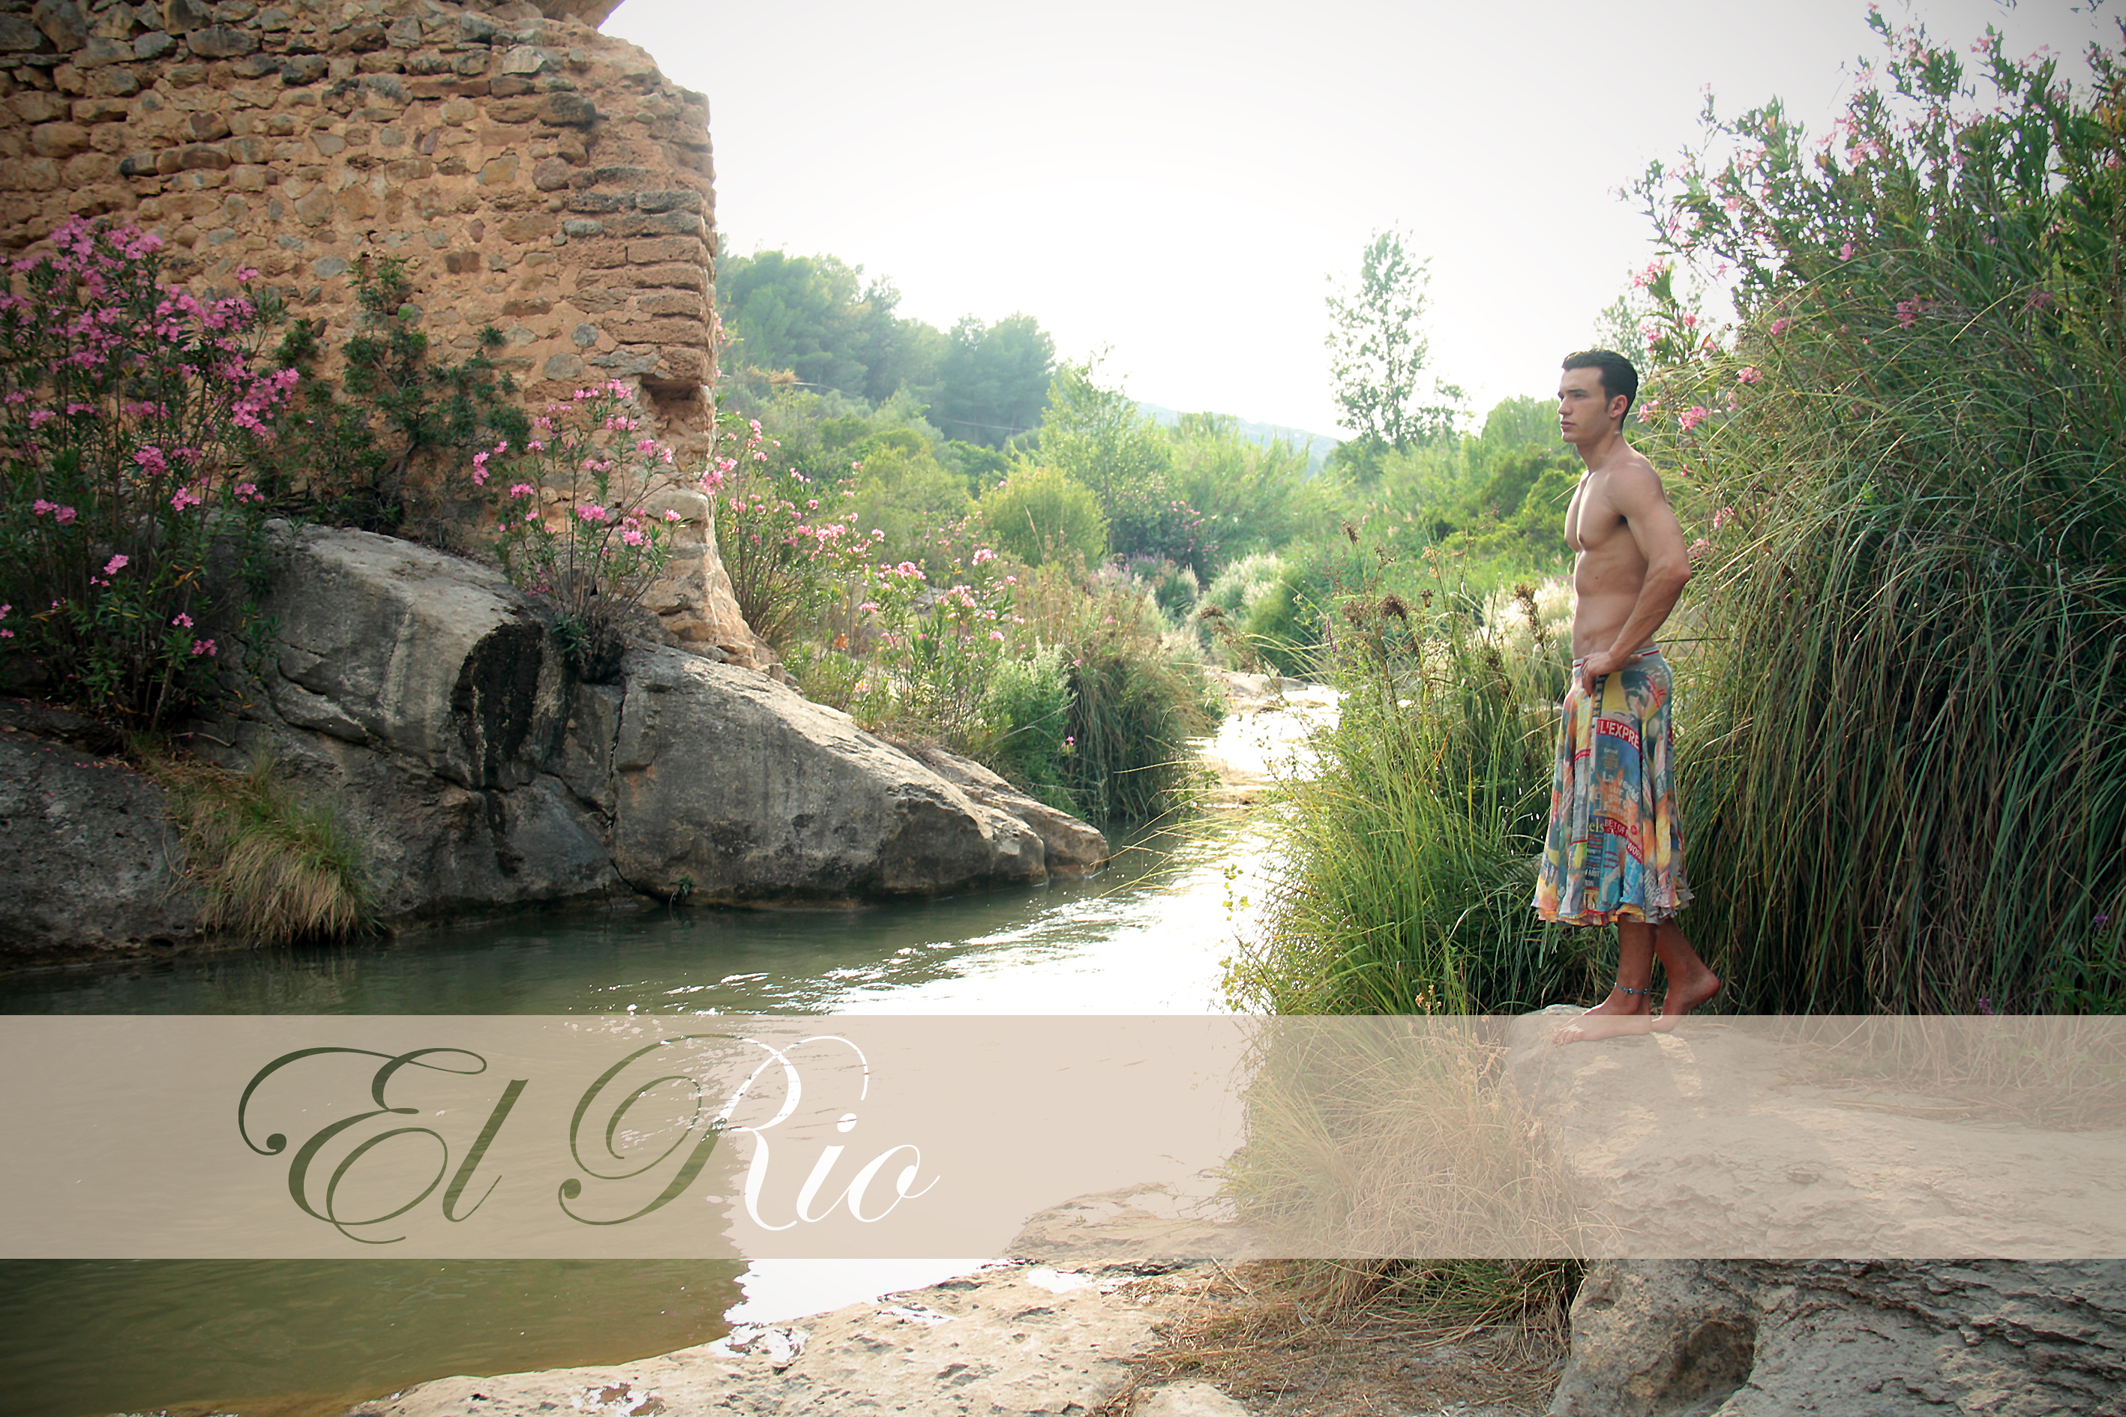 """El Rio"" by Pascual Ibañez Photography"